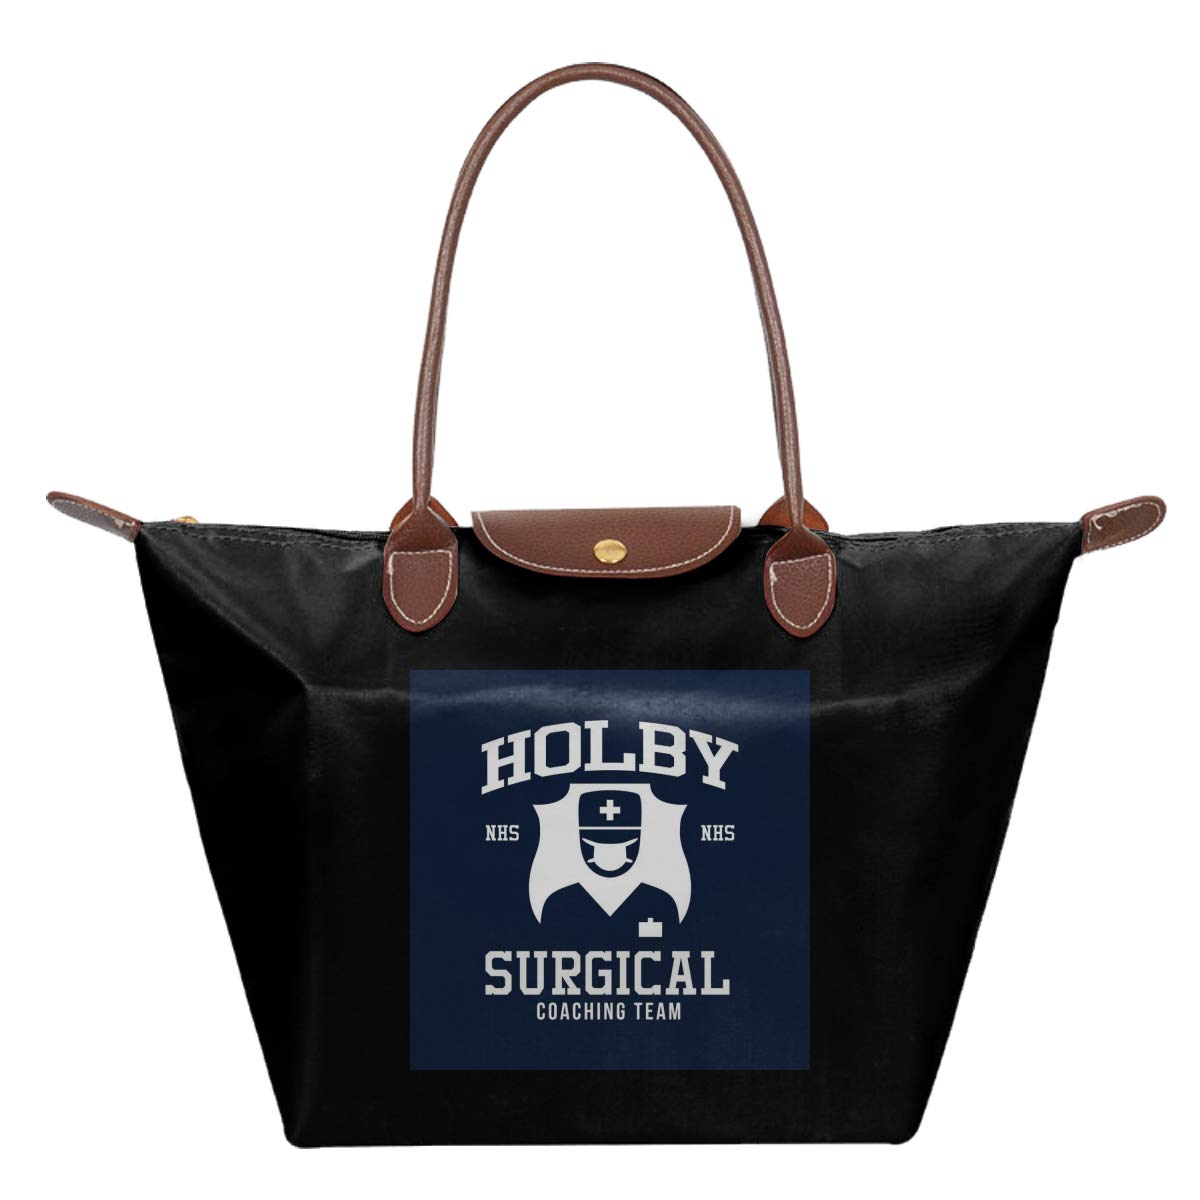 Holby Surgical Coaching Team NHS Waterproof Leather Folded Messenger Nylon Bag Travel Tote Hopping Folding School Handbags